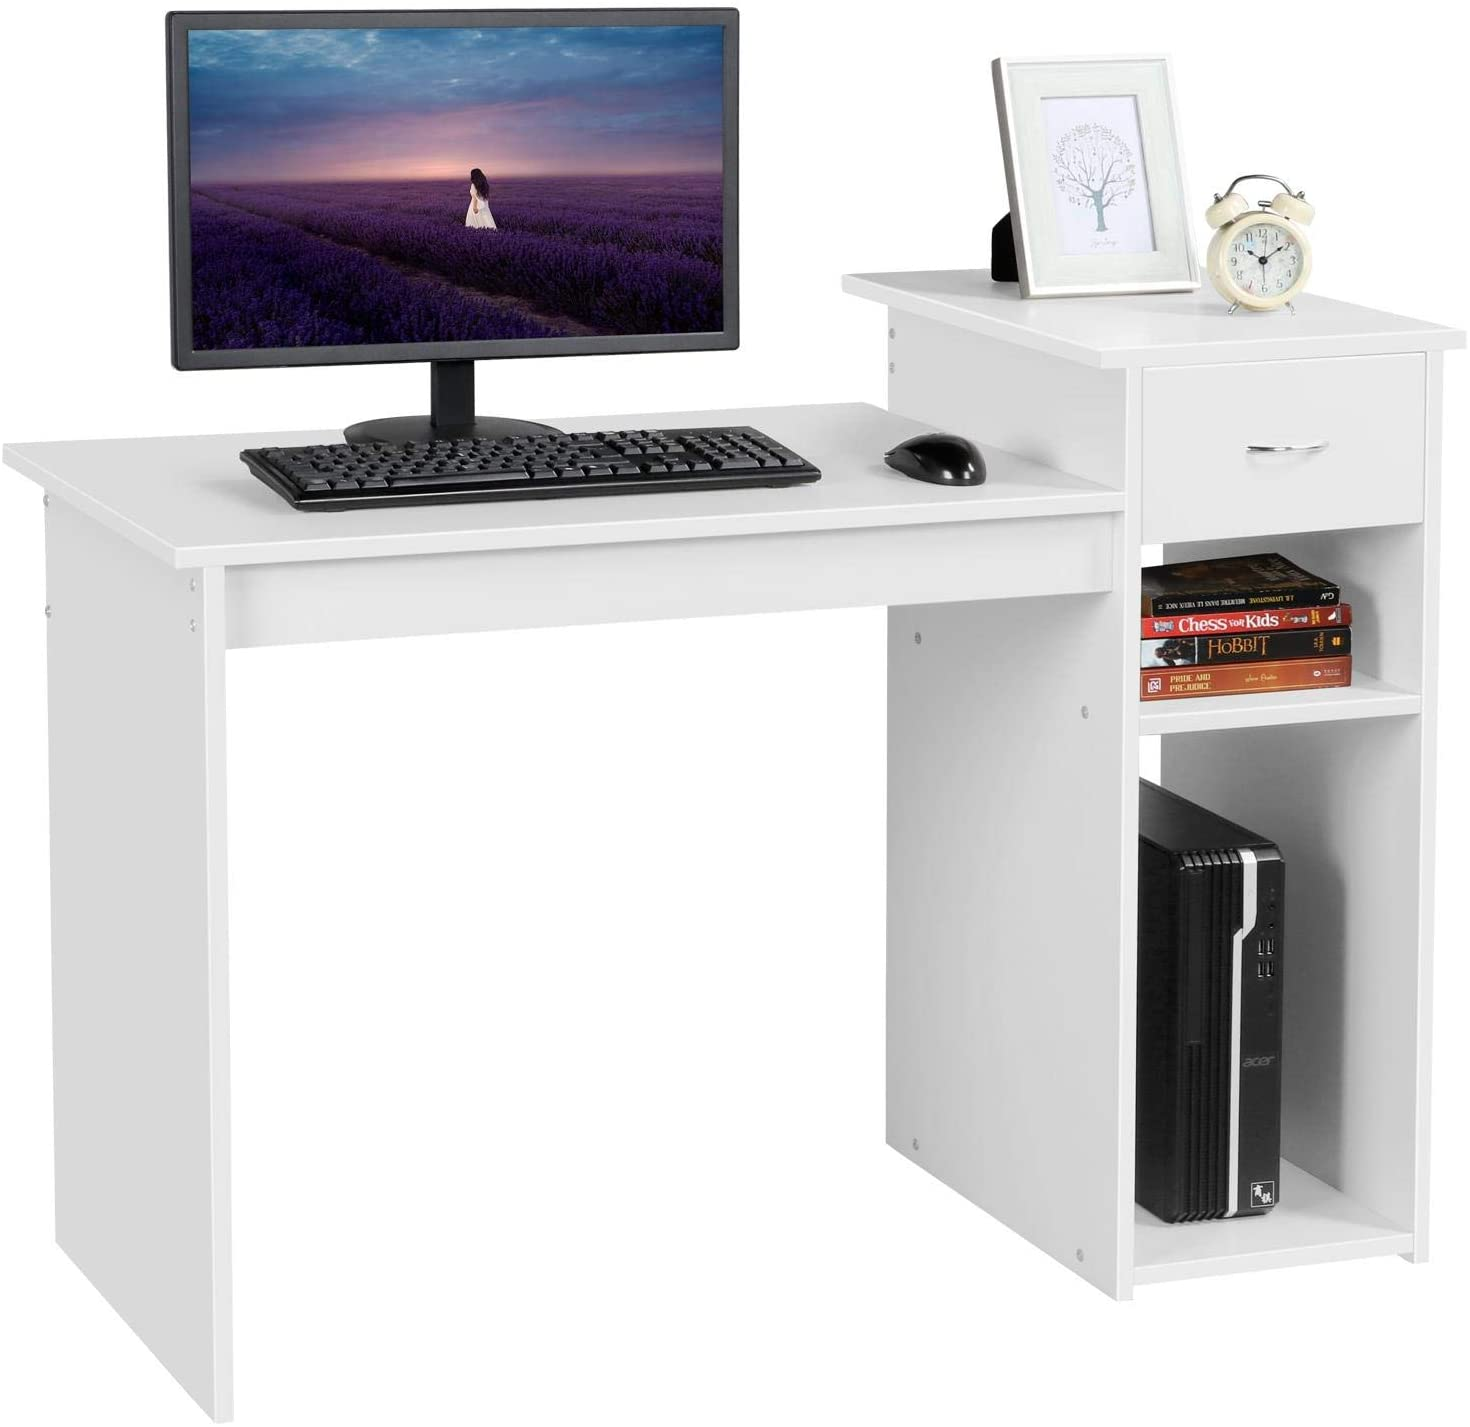 Amazon.com: Yaheetech White Compact Computer Desk Study Computer Workstation Writing PC with Drawer and Shelf for Small Spaces Bedroom Home Office Furniture : Home & Kitchen